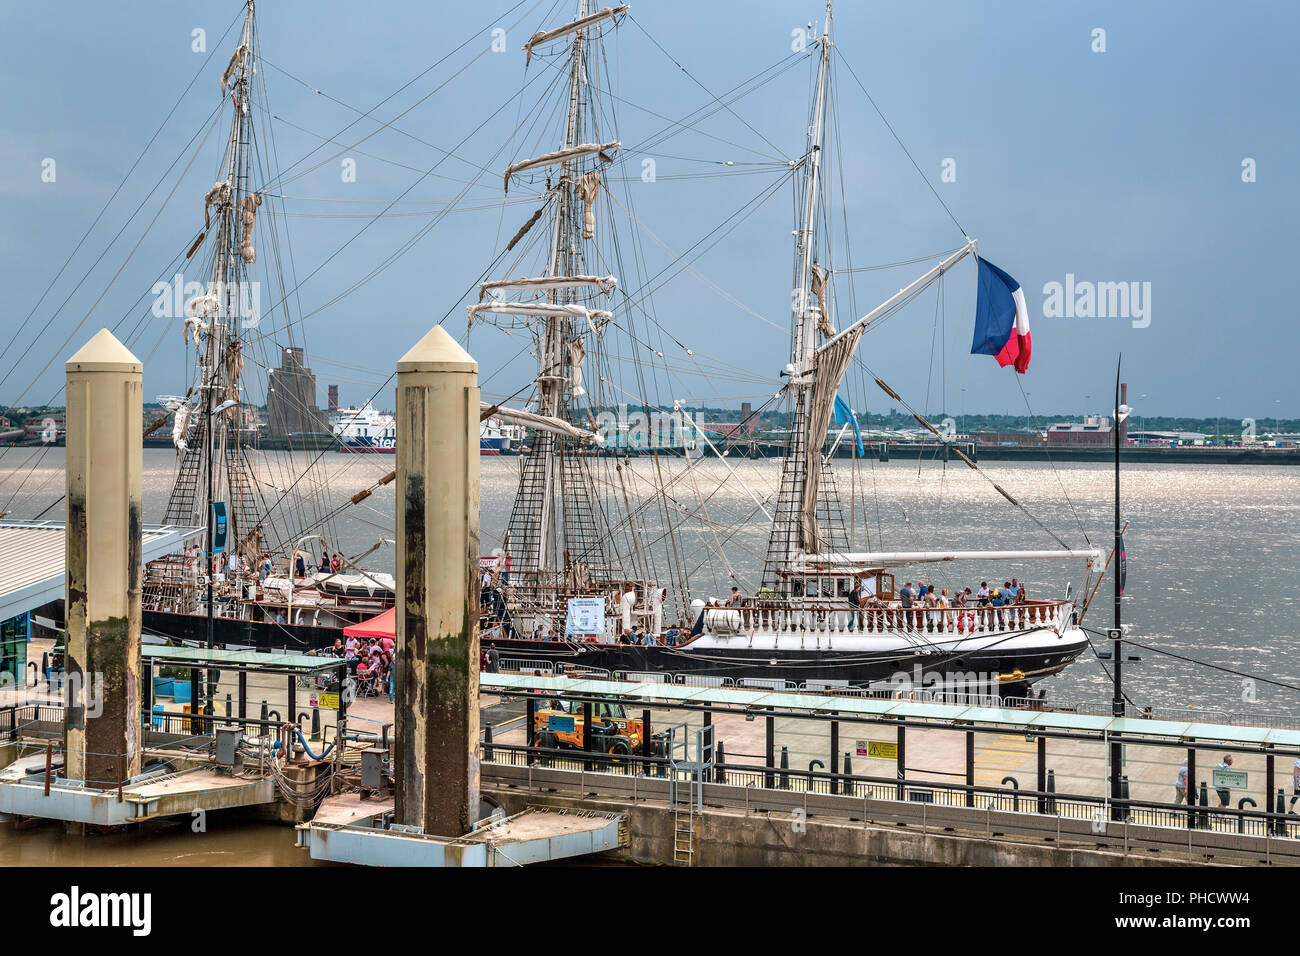 The Tall Ships Regatta out on the River Mersey in May 2018. - Stock Image